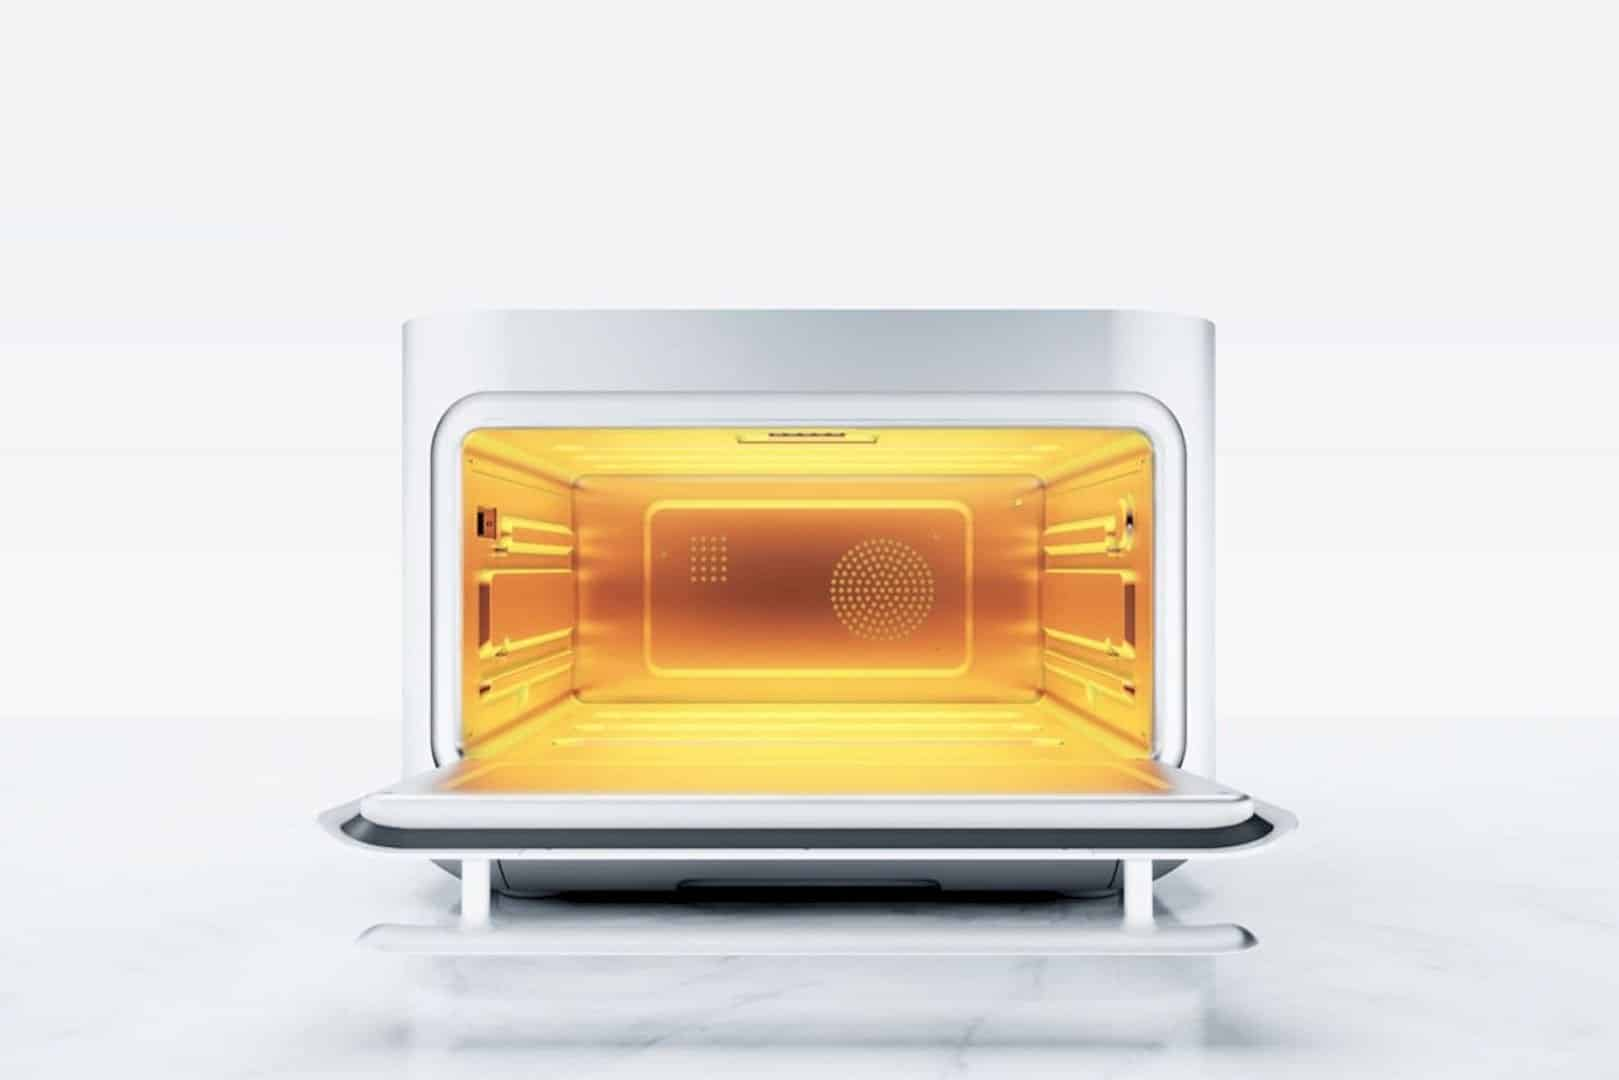 Brava Oven: Light Years Beyond the Oven you Know